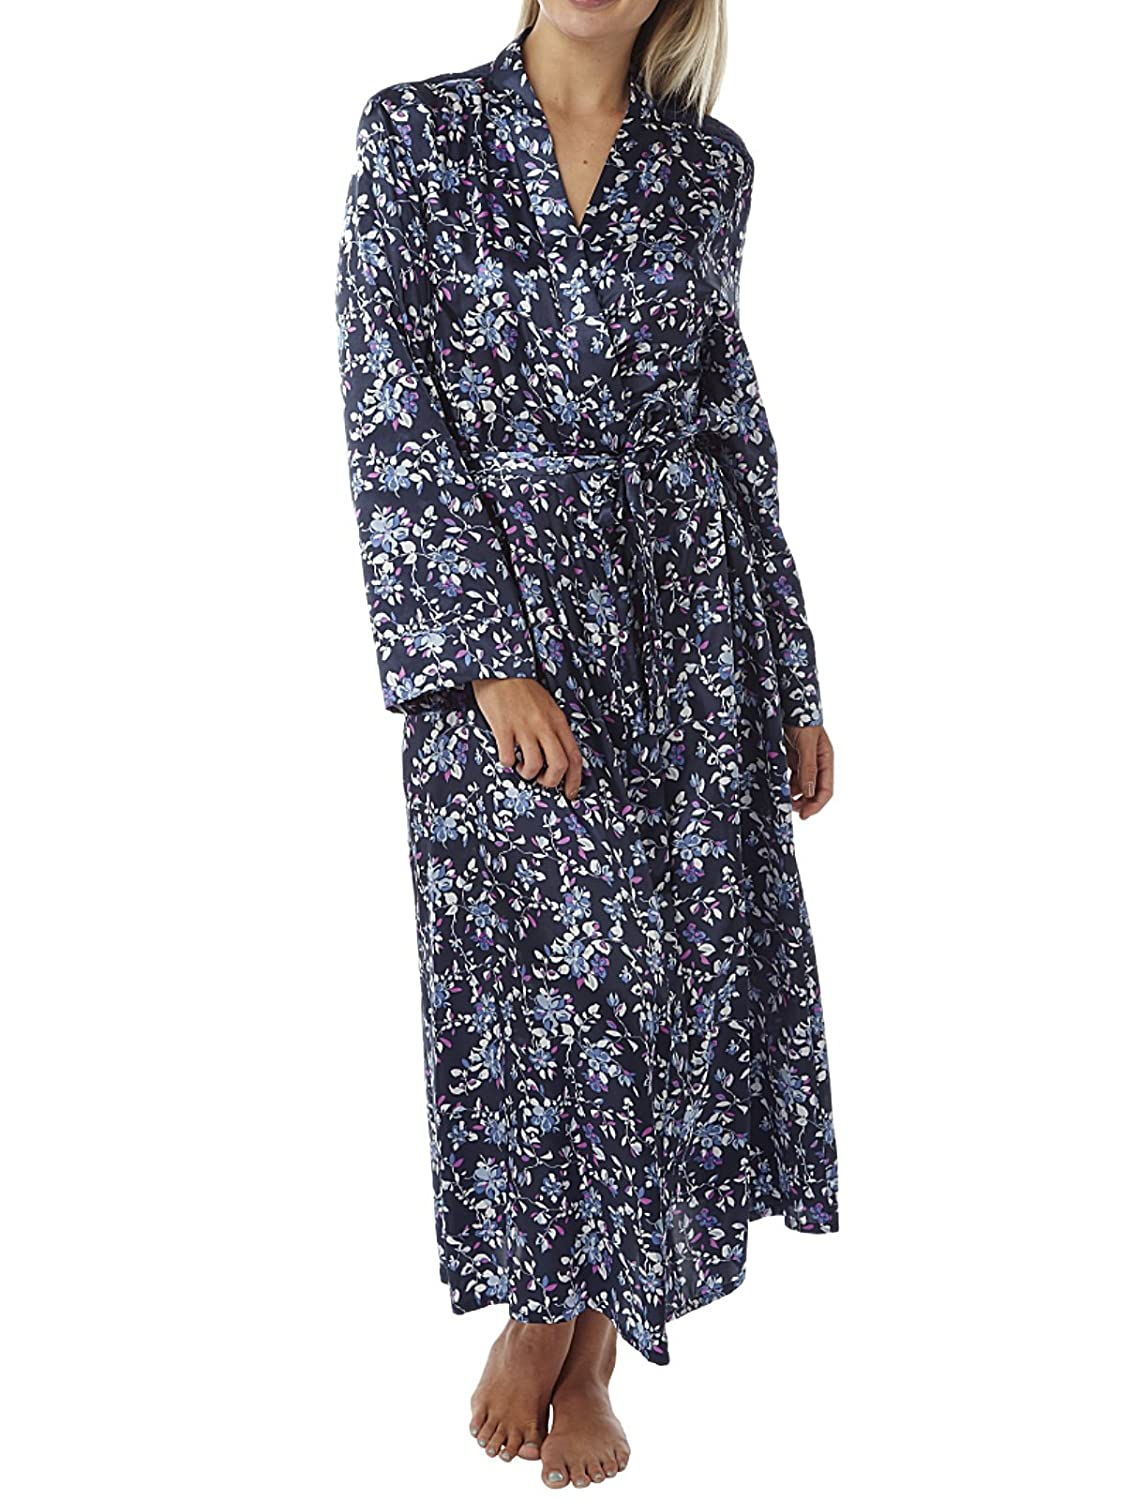 Indigo Sky Ladies Charmeuse Satin Wrap Lace Panel Floral Print Dressing Gown 10 to 28